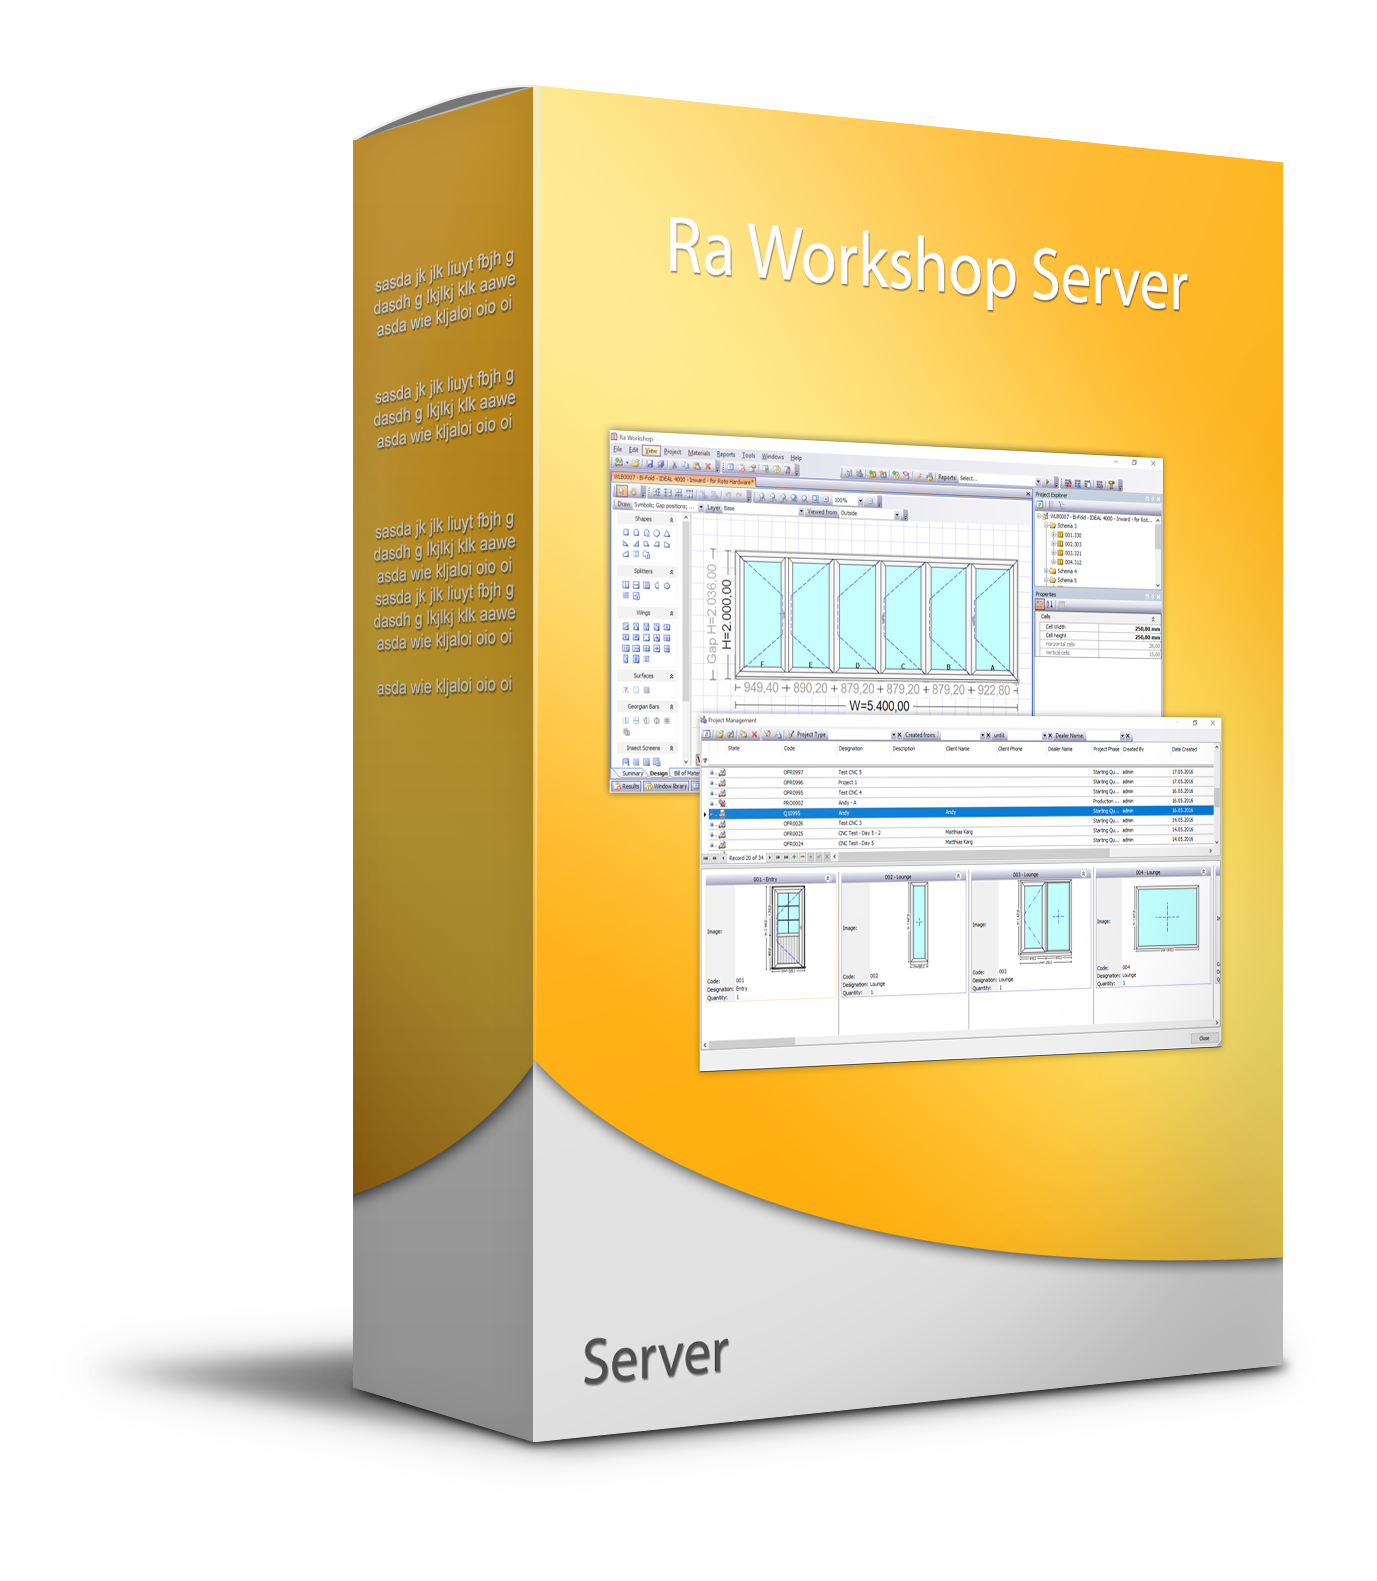 Ra Workshop Server